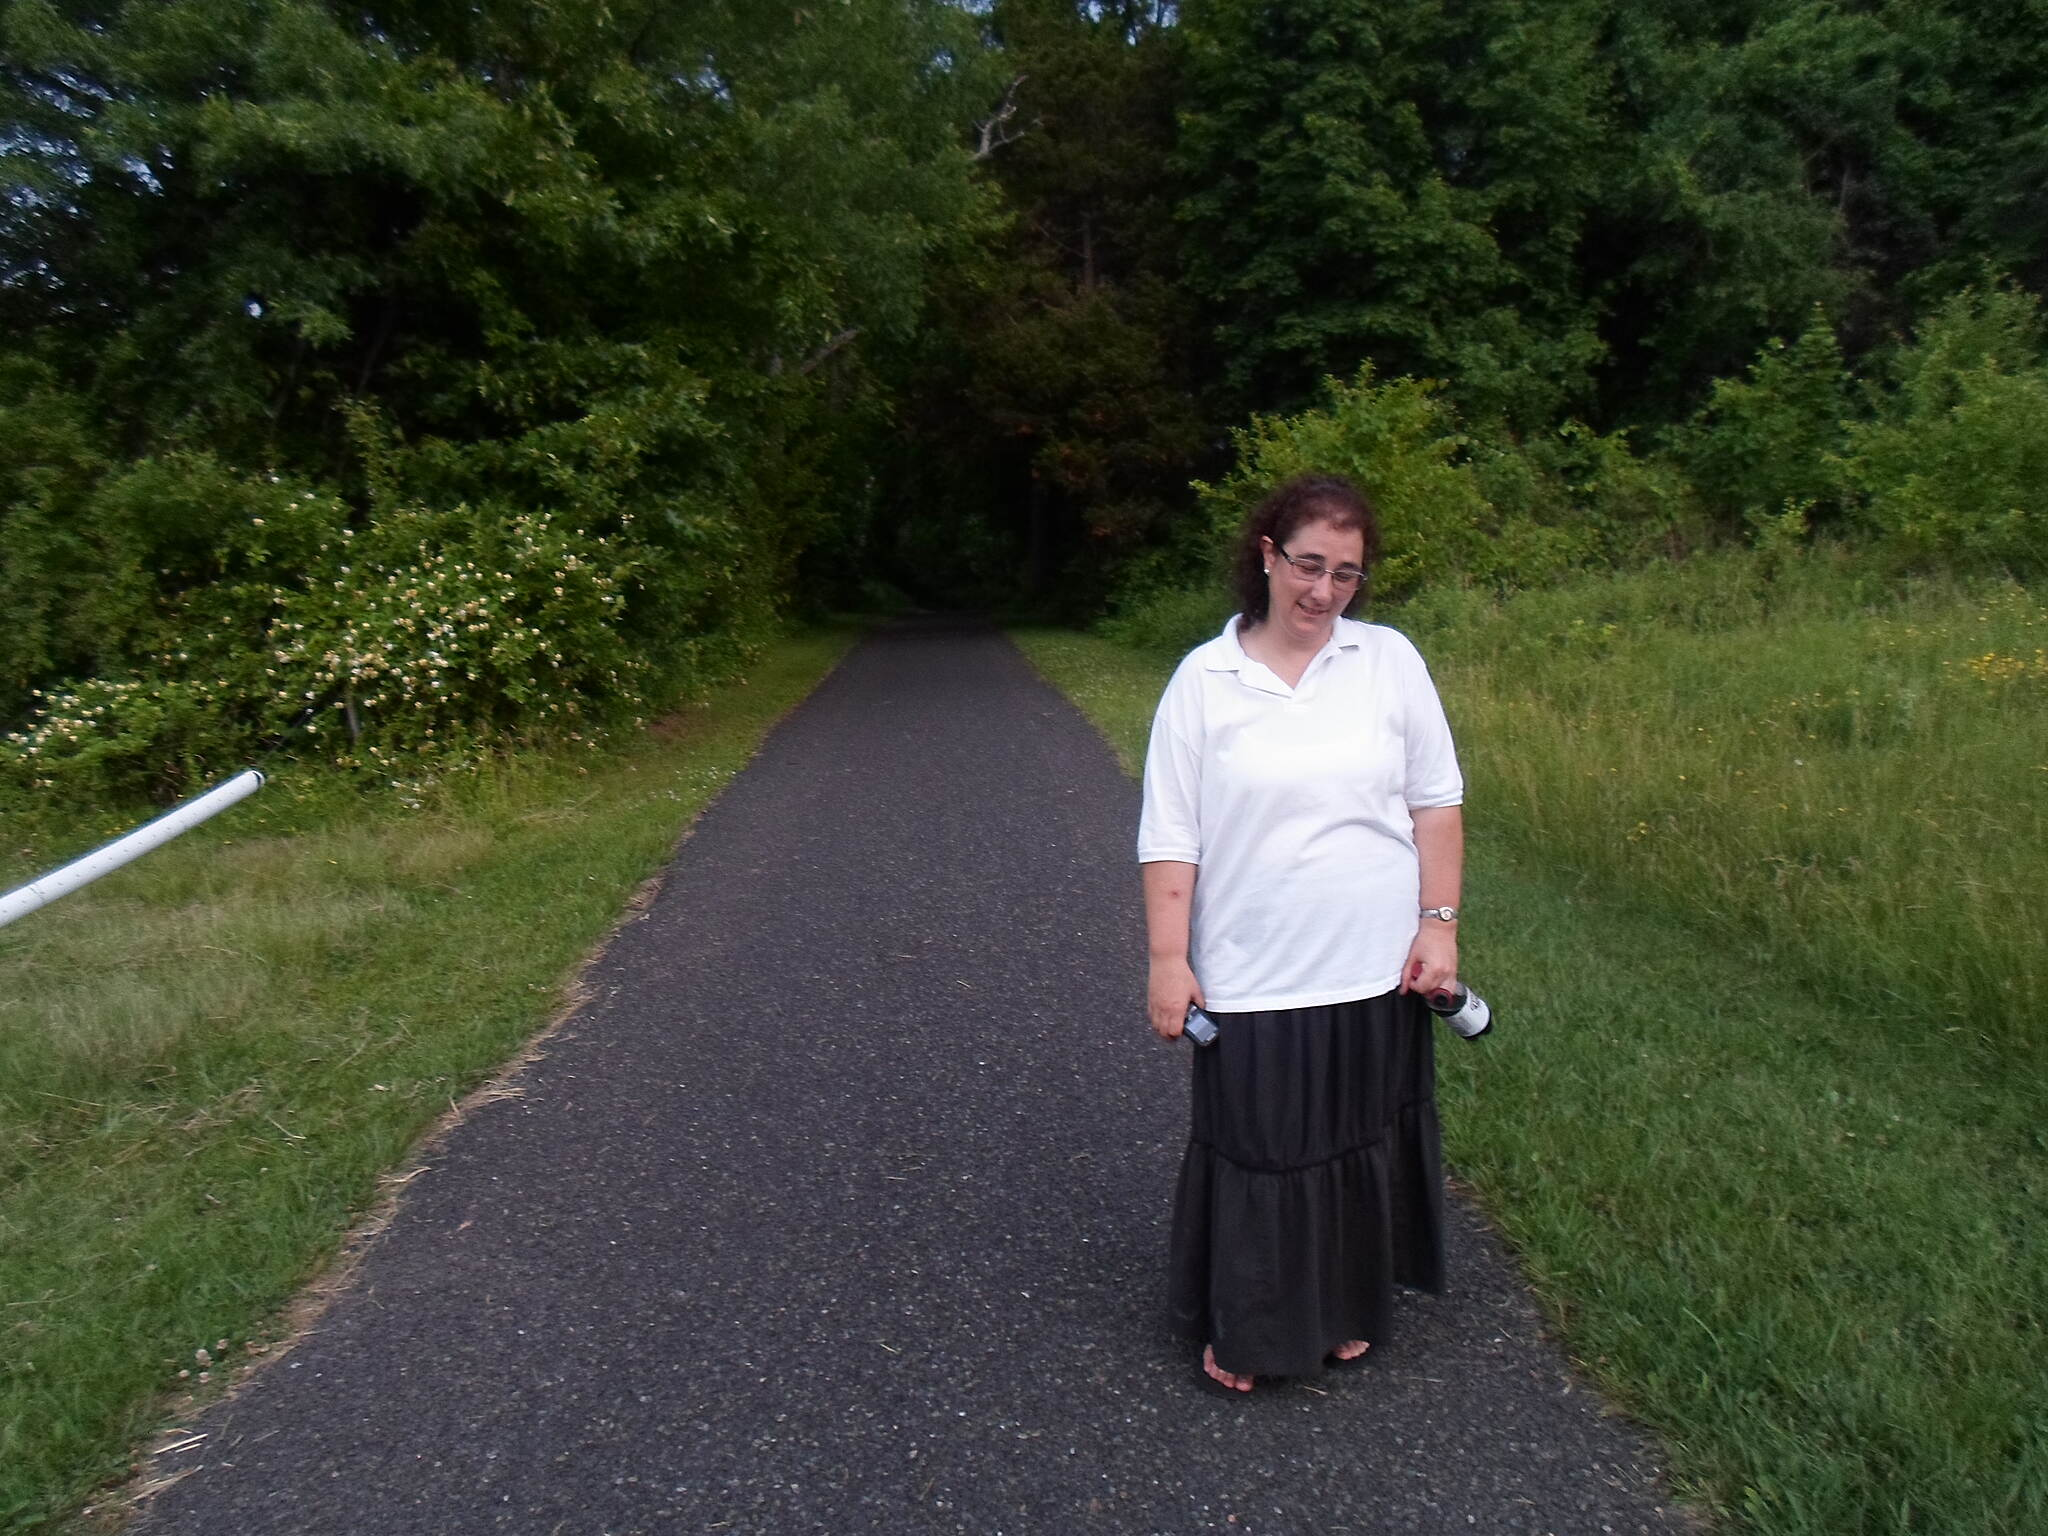 Skippack Trail Skippack Trail This woman was enjoying en evening stroll on the portion of the trail between Mensch and Creamery roads. Taken June 2015.